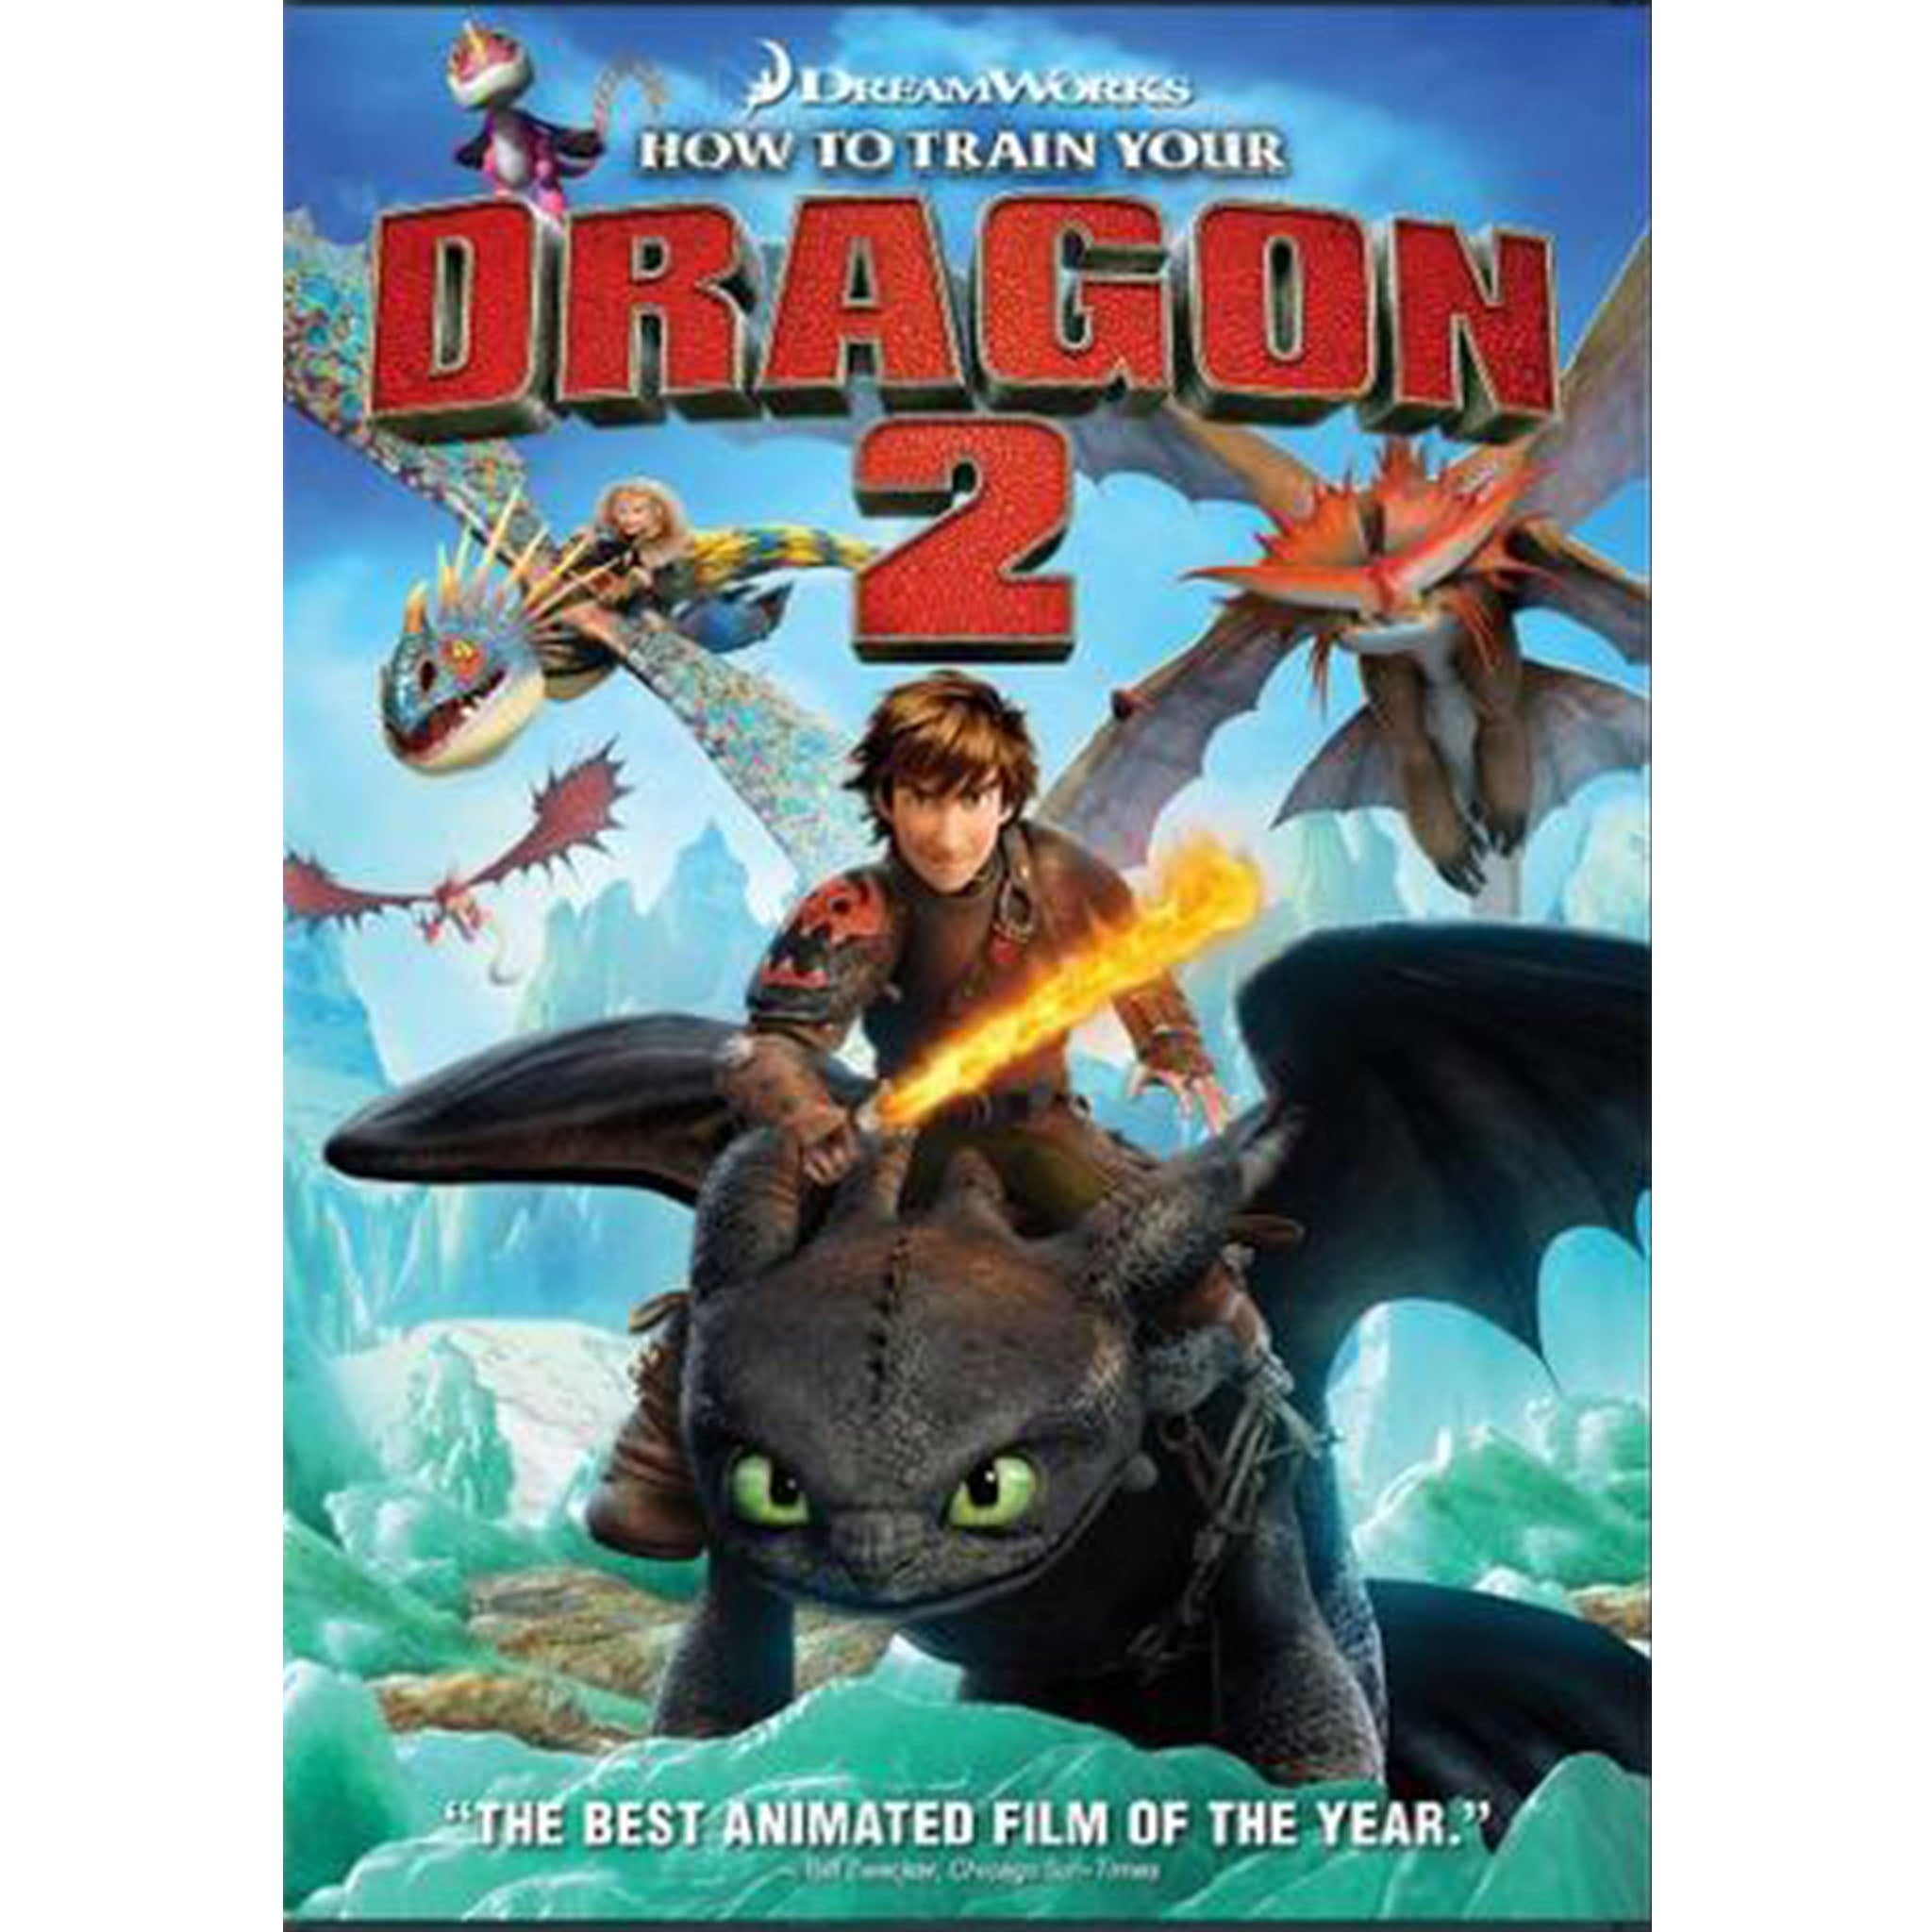 How to Train Your Dragon 2 (DVD) - DVDsHQ